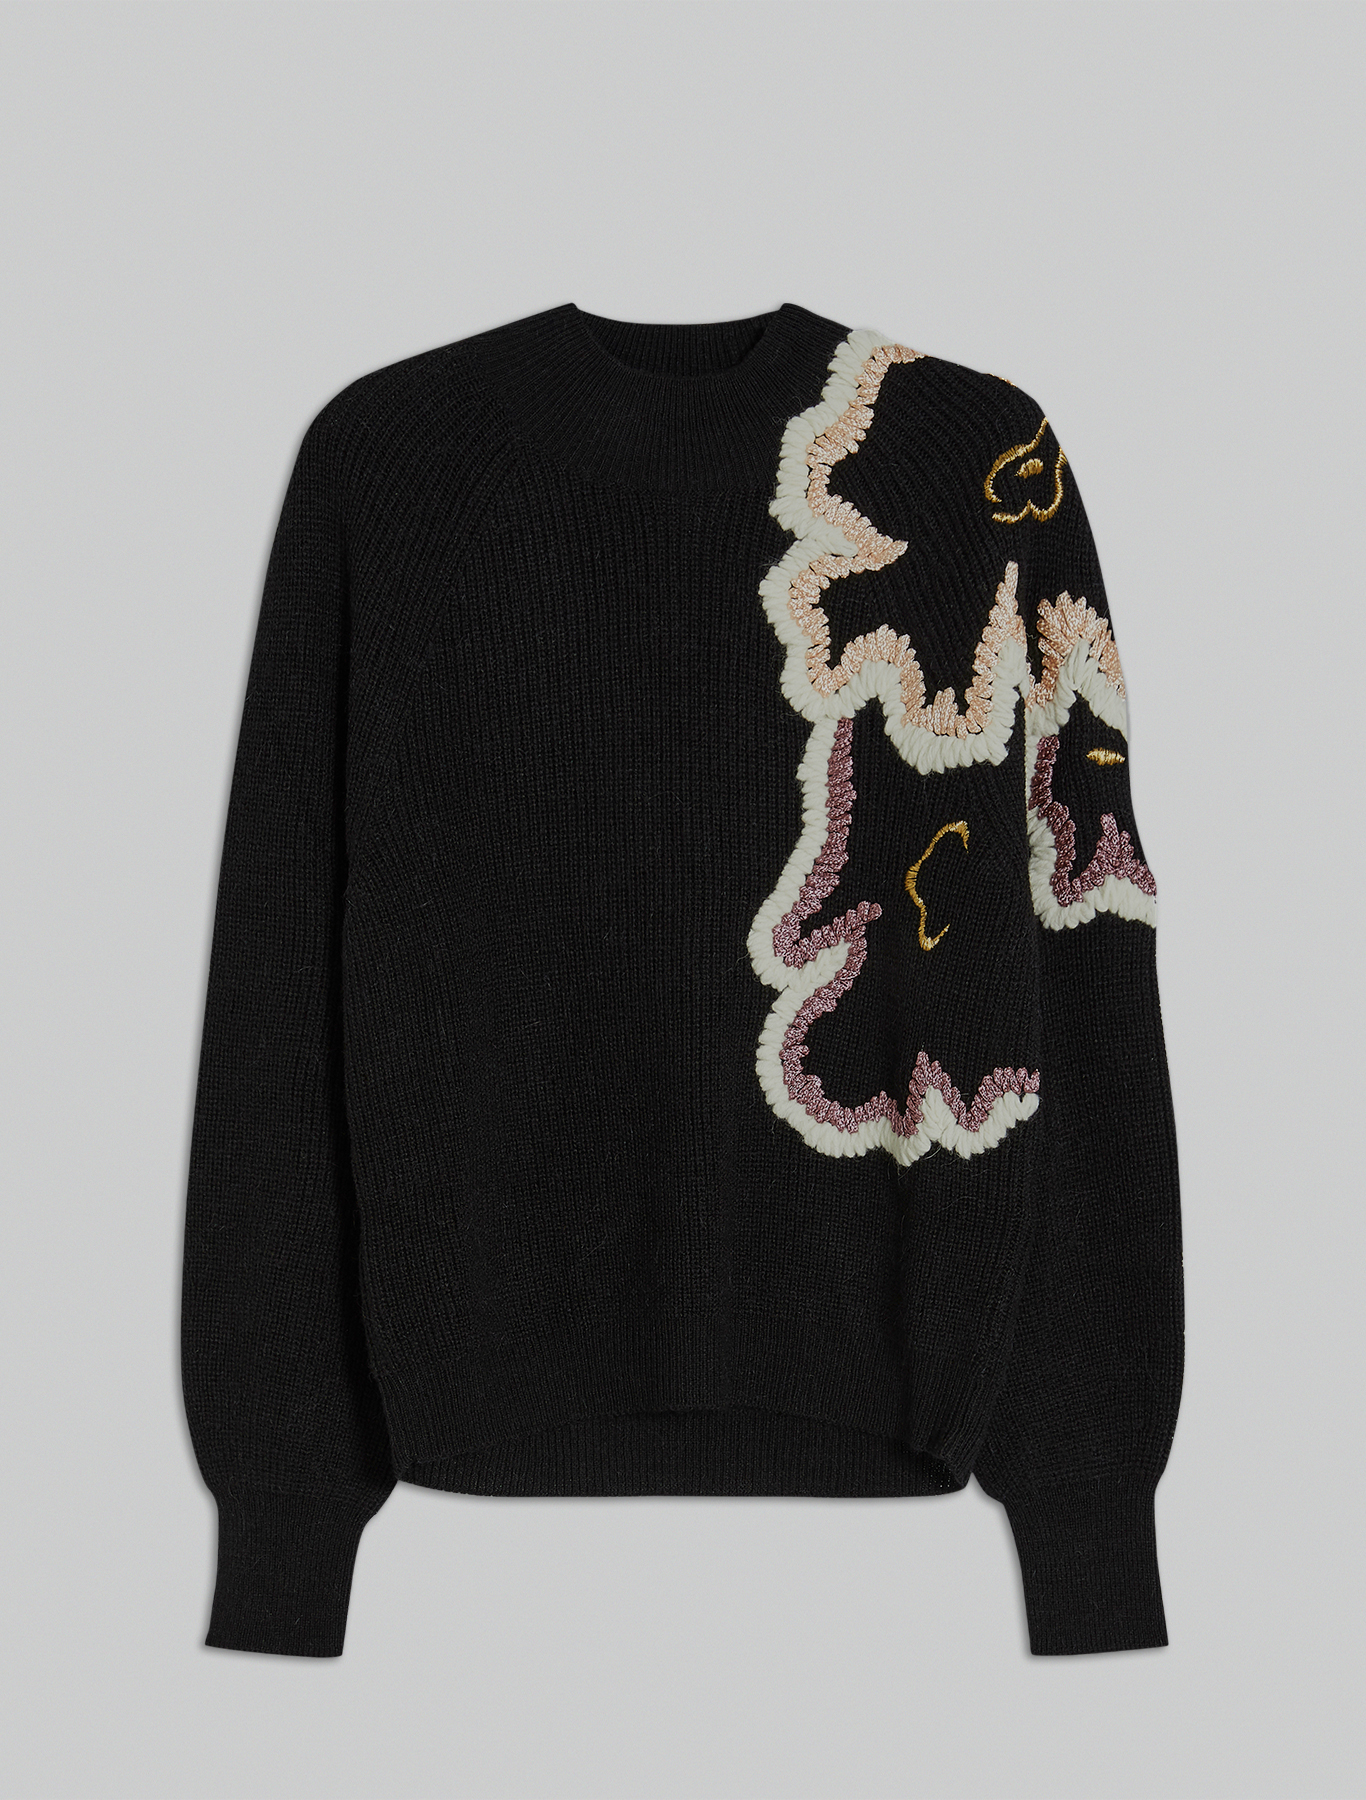 Electric Feel by Spiros Halaris embroidered jumper - black - pennyblack